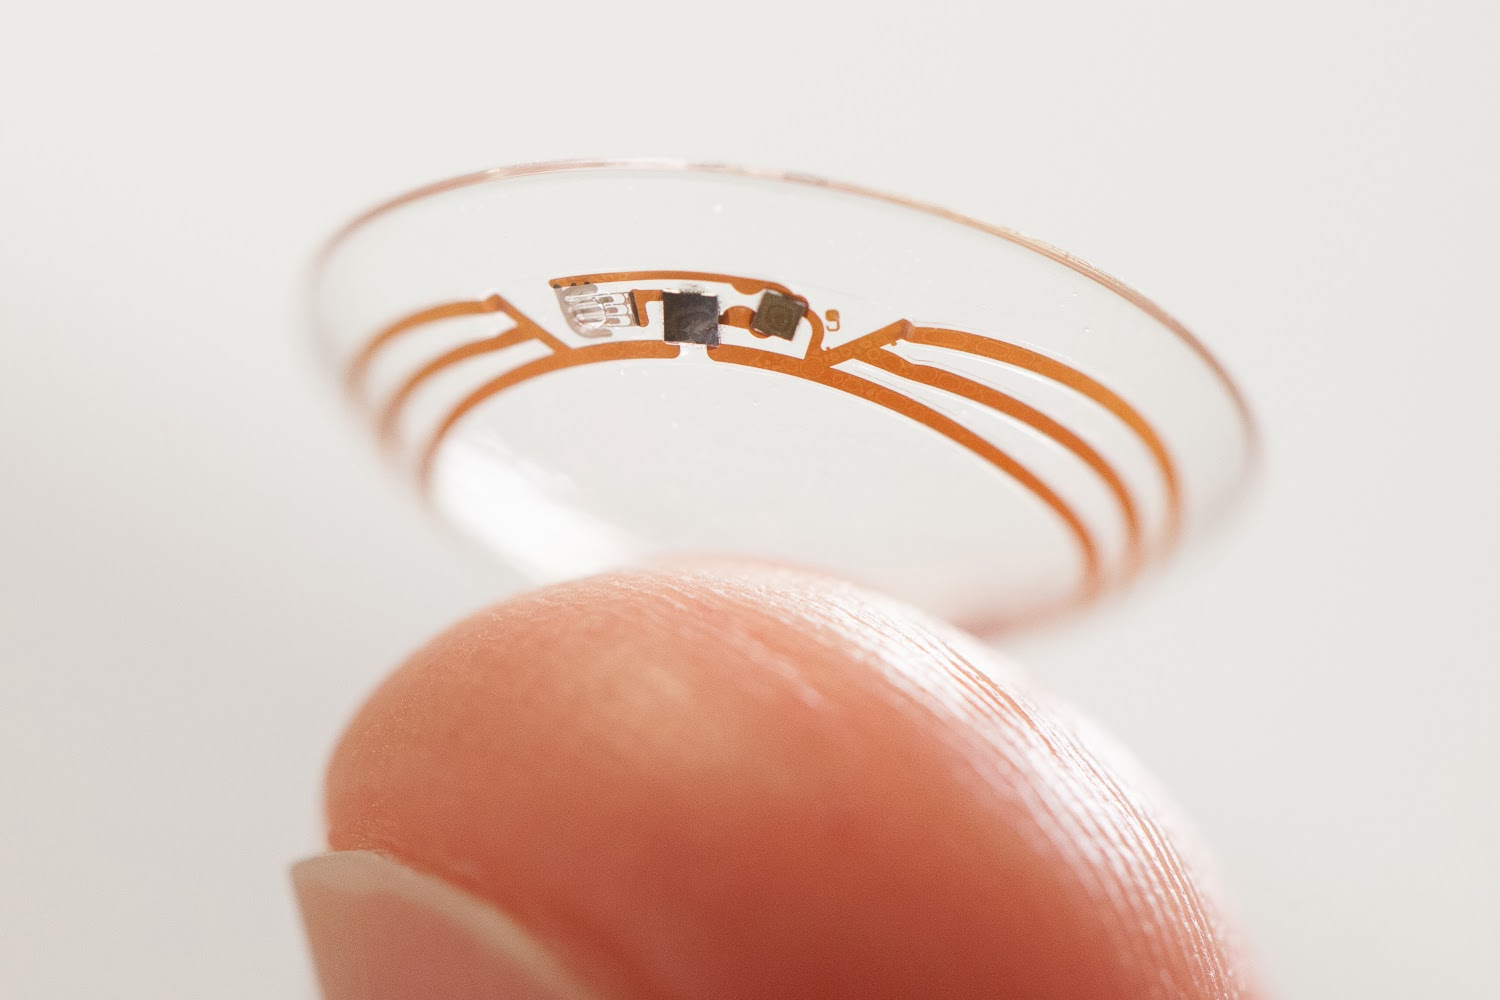 Wearable Contact Lens